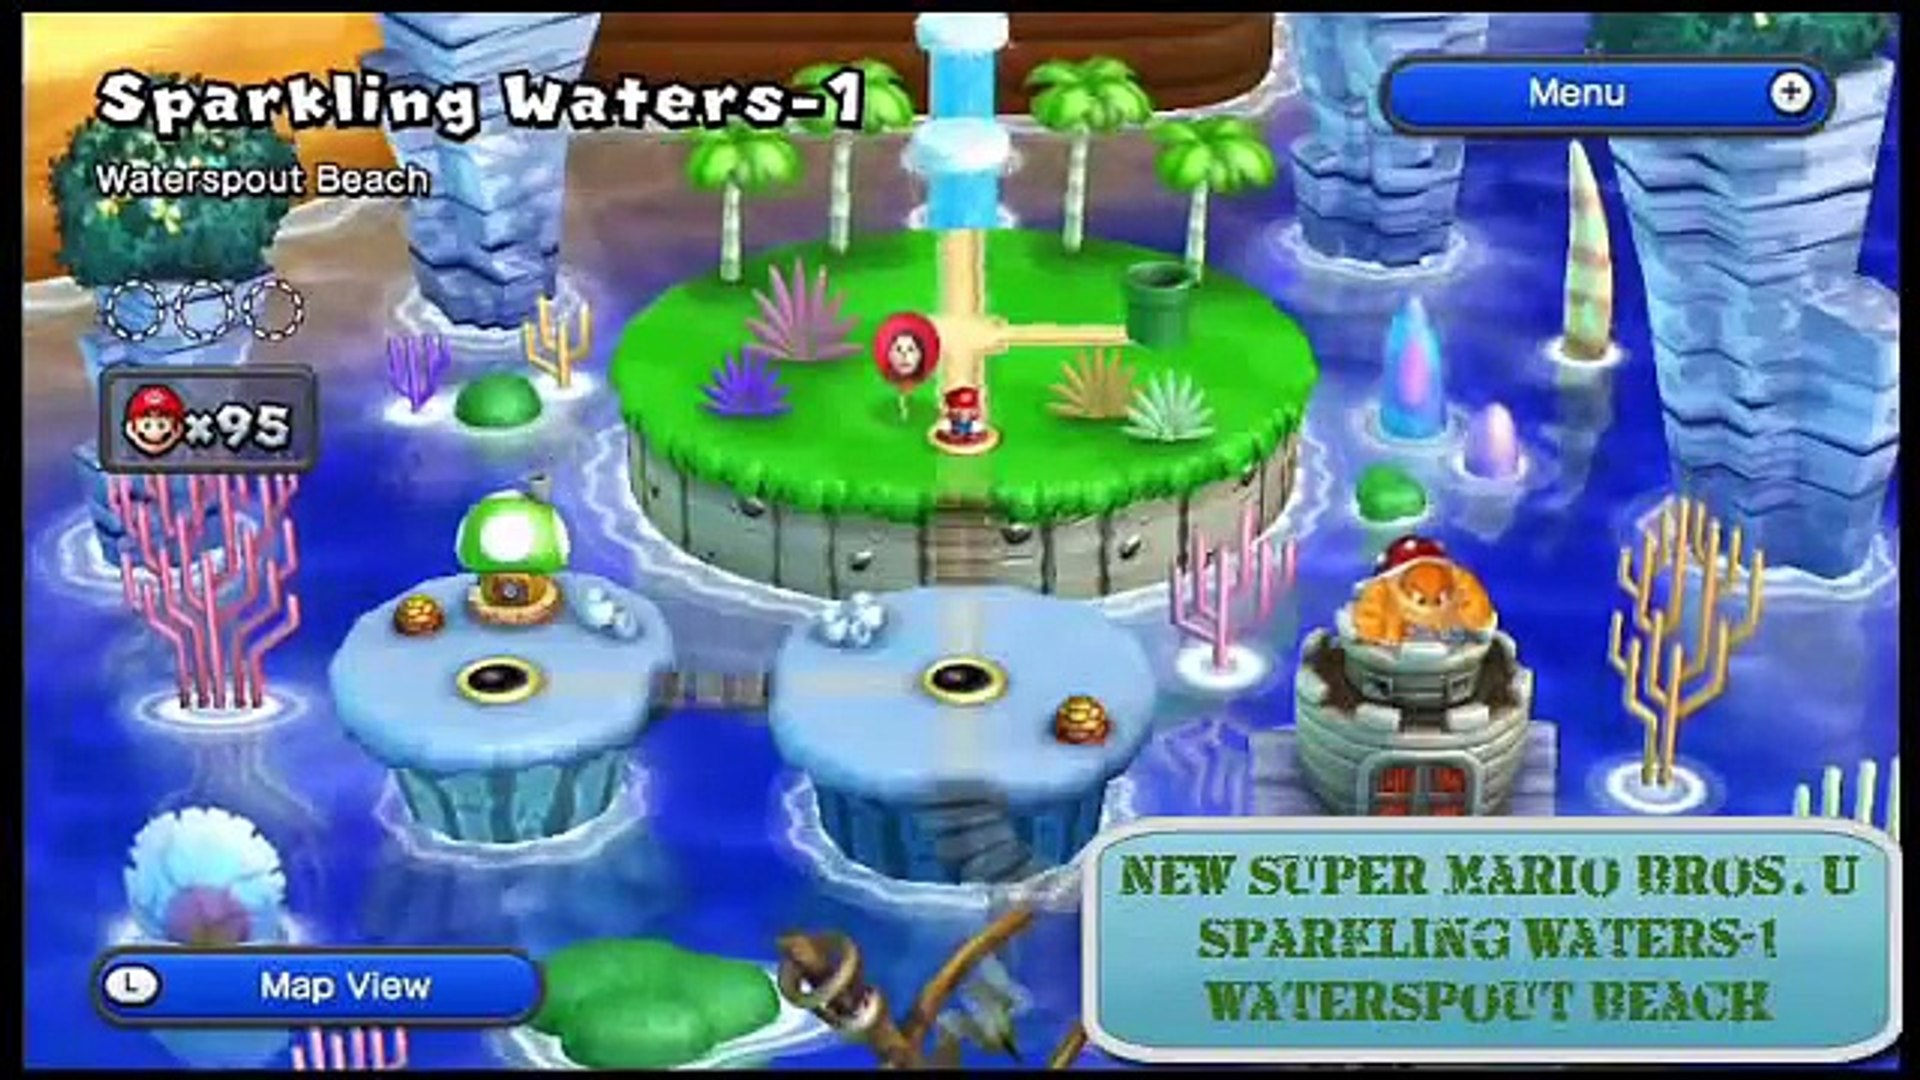 New Super Mario Bros. U: Sparkling Waters-1: Waterspout Beach - Star Coins